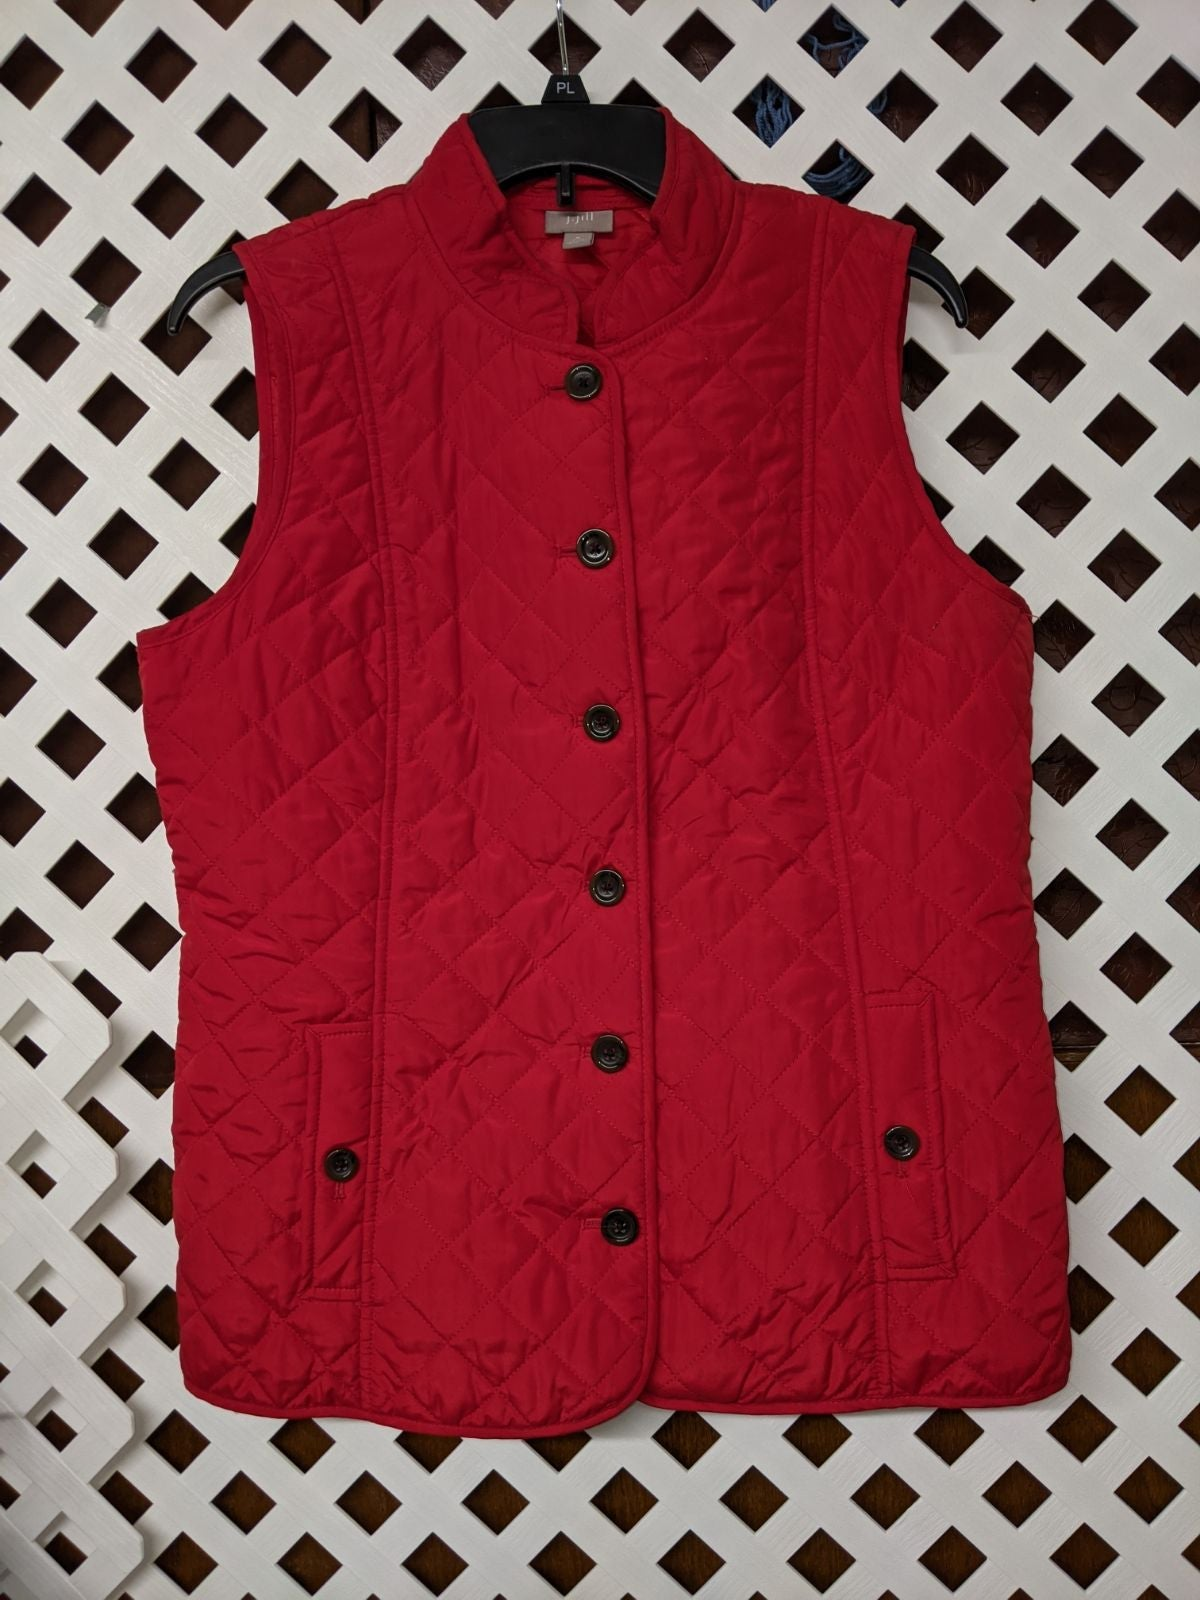 Vest winter size medium